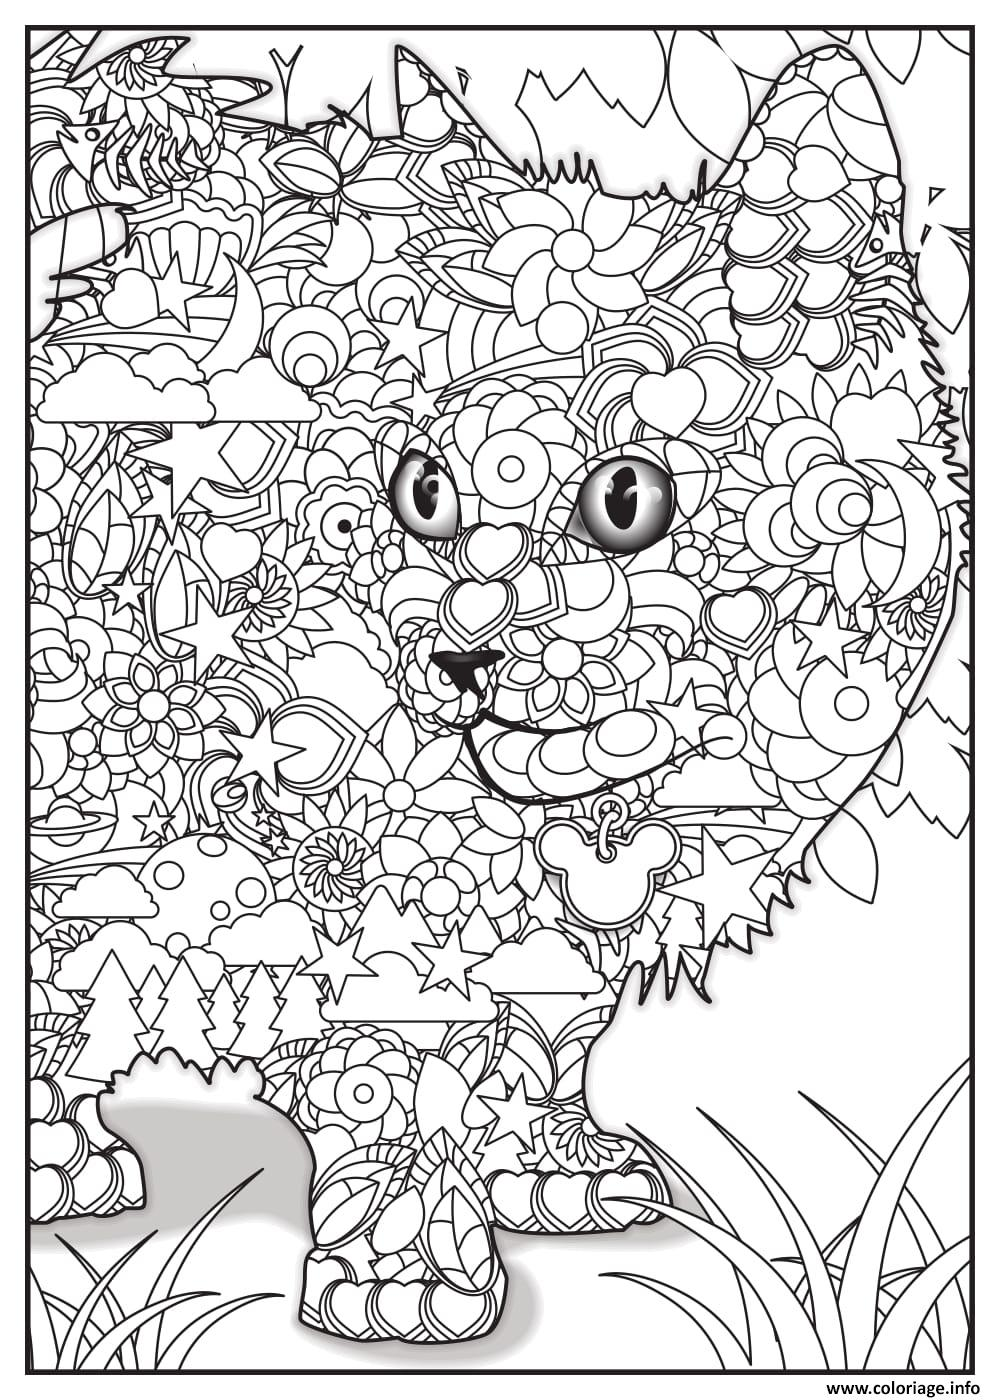 Coloriage chat adulte animaux dessin - Grand dessin a colorier ...